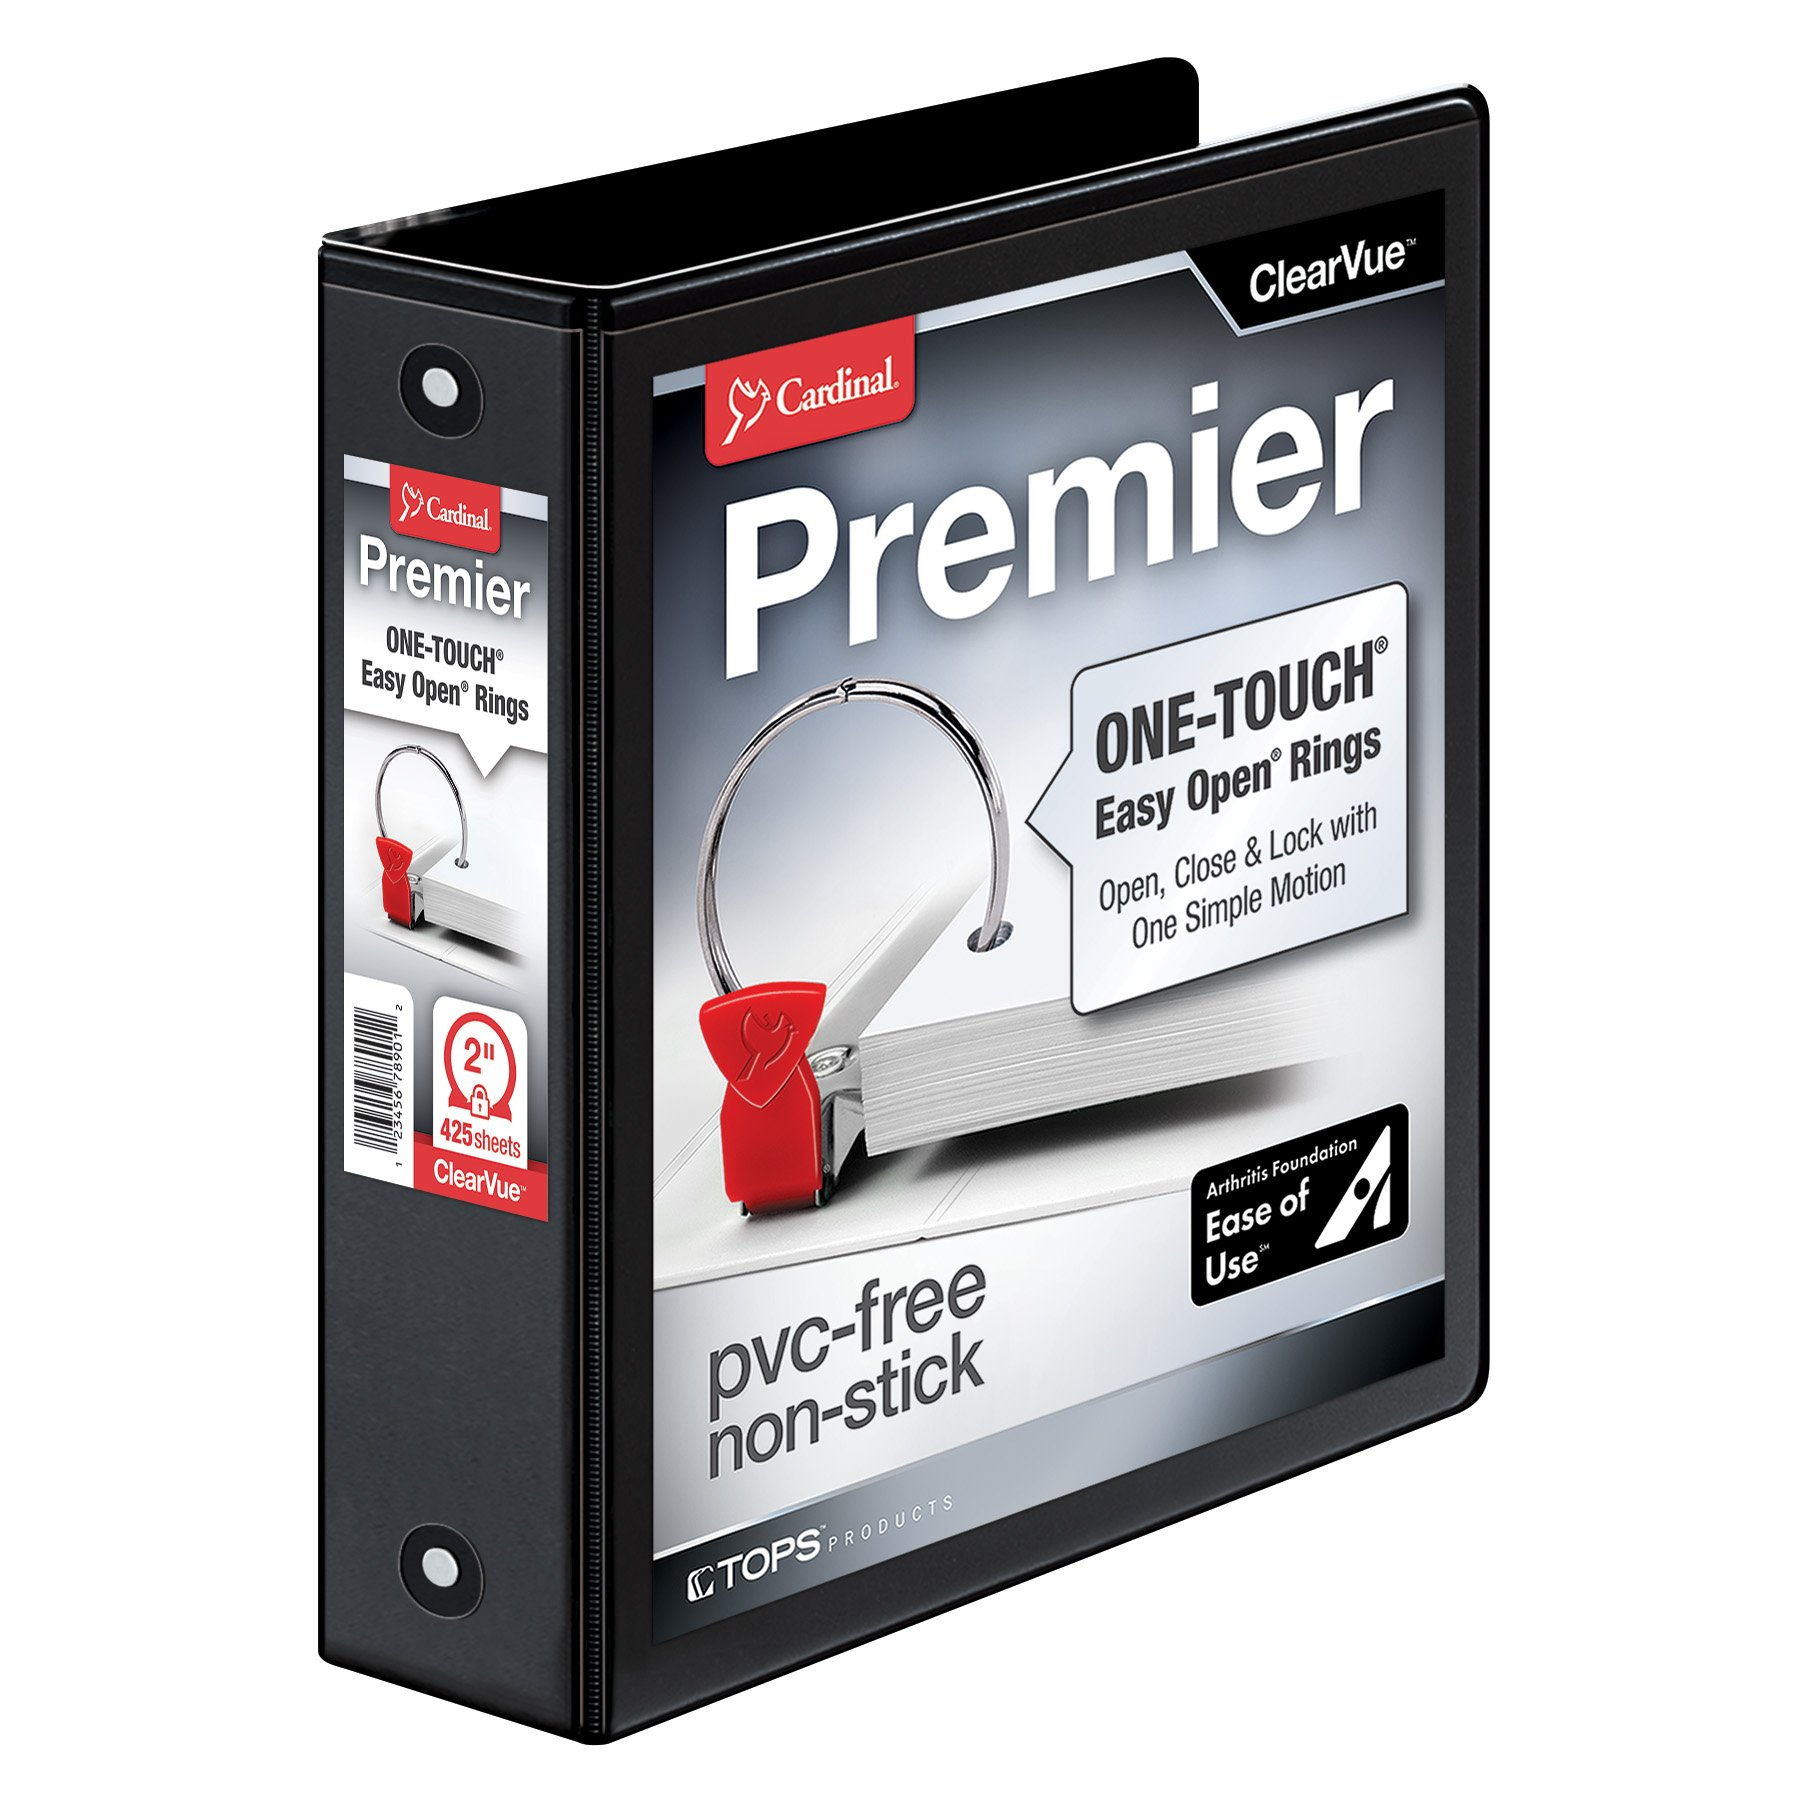 Cardinal Premier Easy Open 3-Ring Binder, 2'', ONE-TOUCH Easy Open Locking Round Rings, 425-Sheet Capacity, ClearVue Cover, PVC-Free, Black (11121)